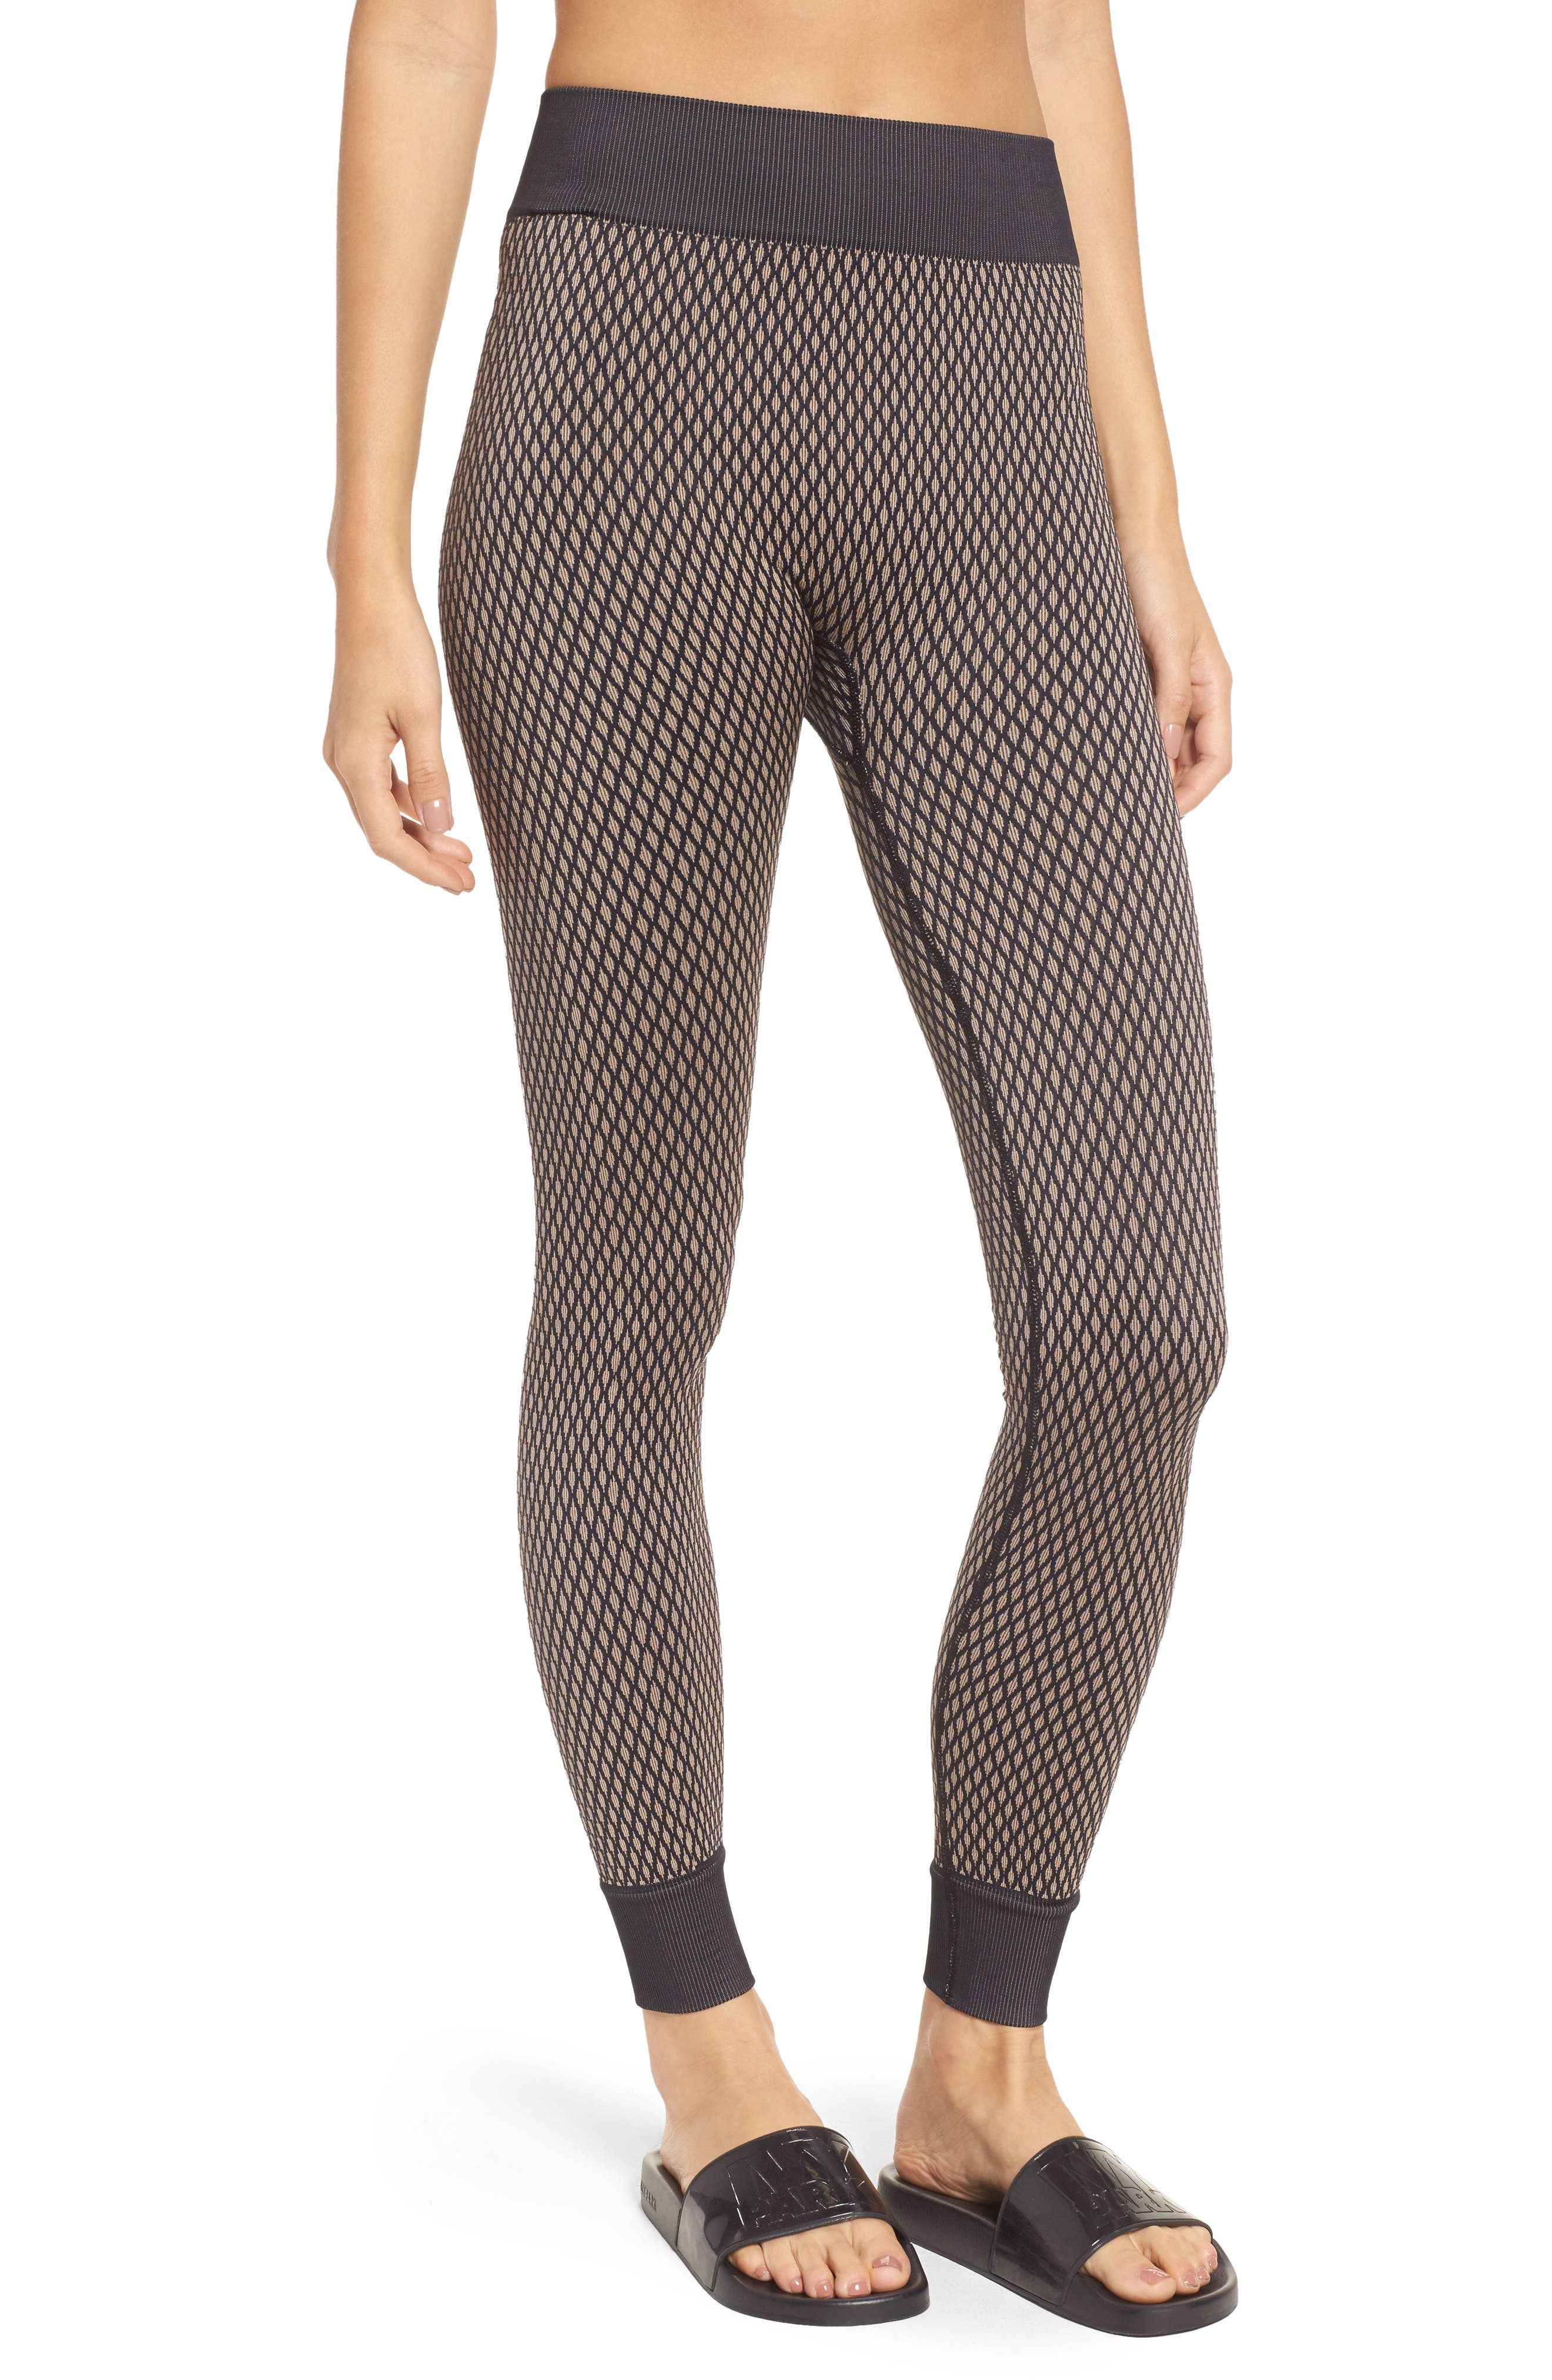 Main Image - IVY PARK® Fishnet Seamless Leggings